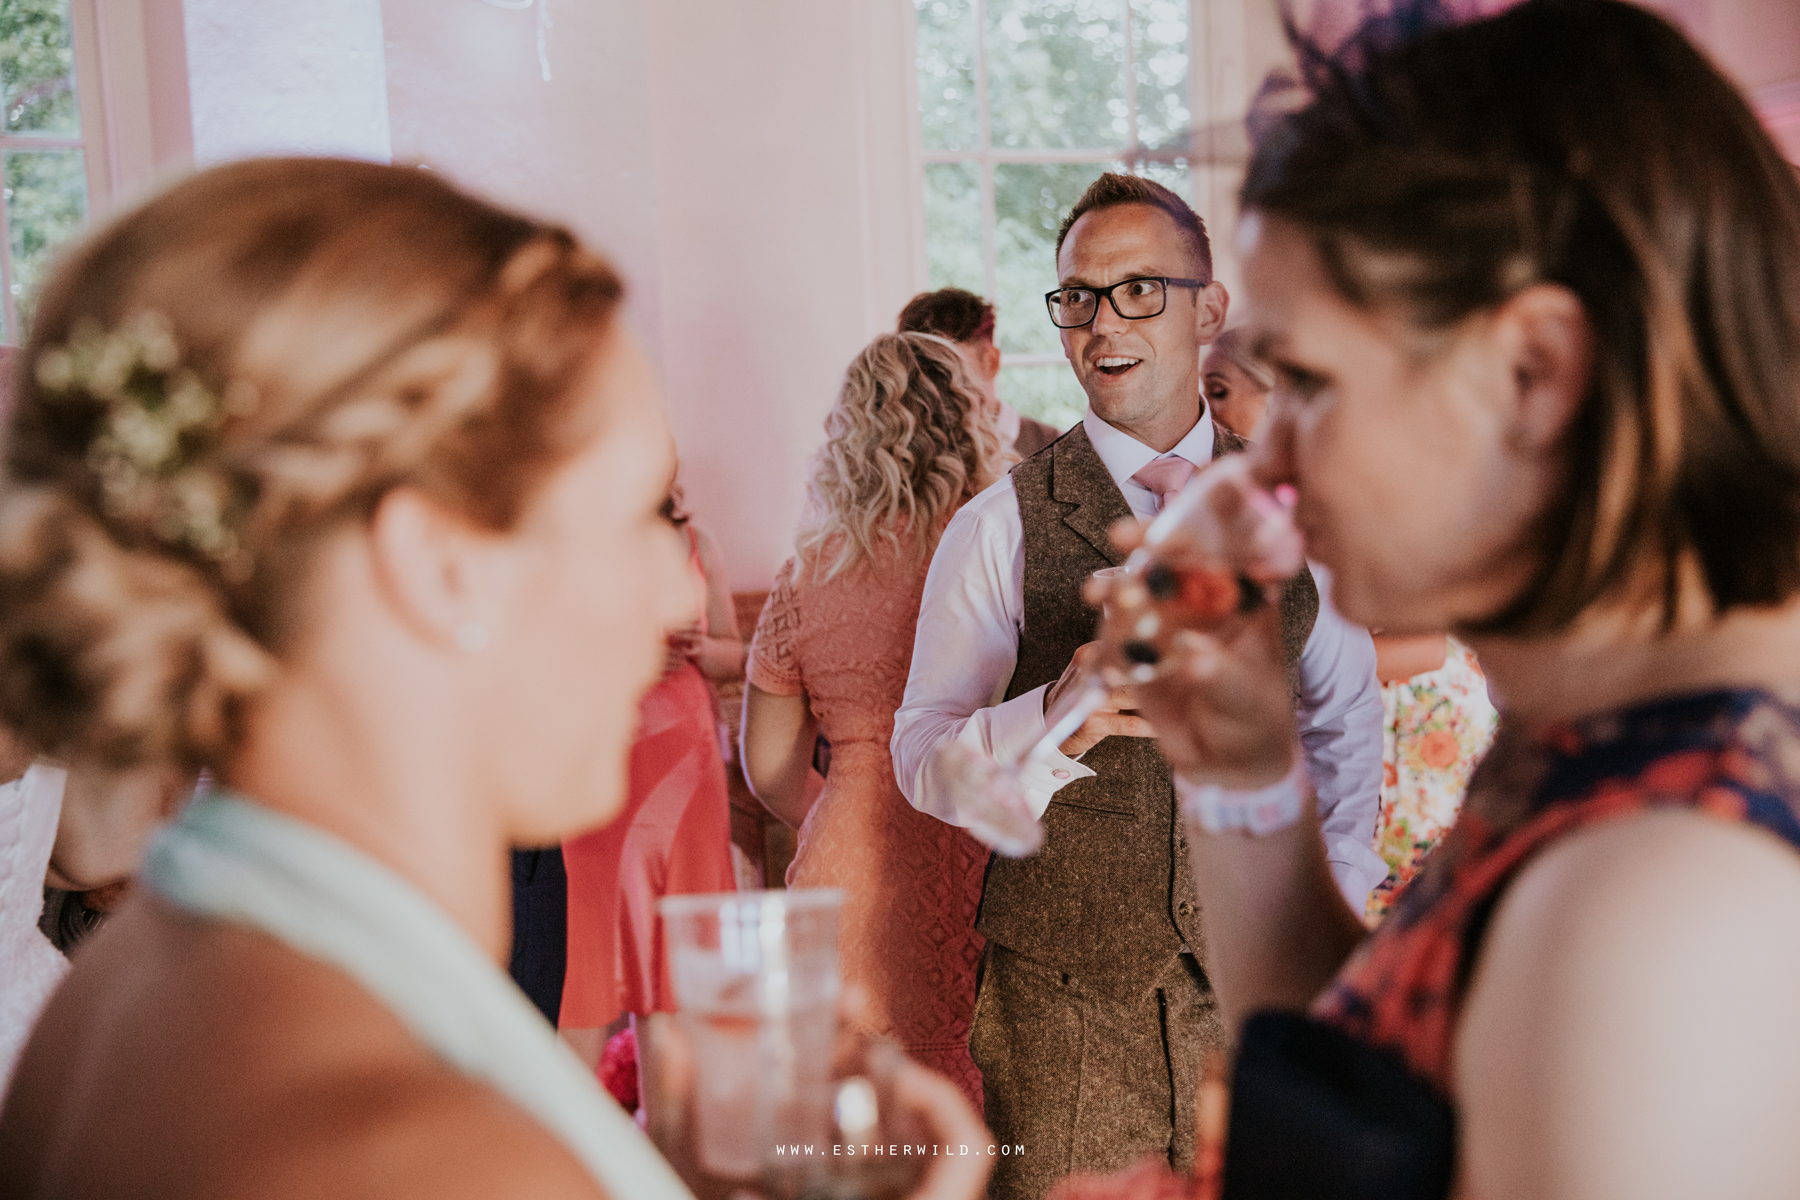 Swaffham_Wedding_Castle_Acre_Norfolk_Esther_Wild_Photographer_Wedding_Photography_3R8A2224.jpg